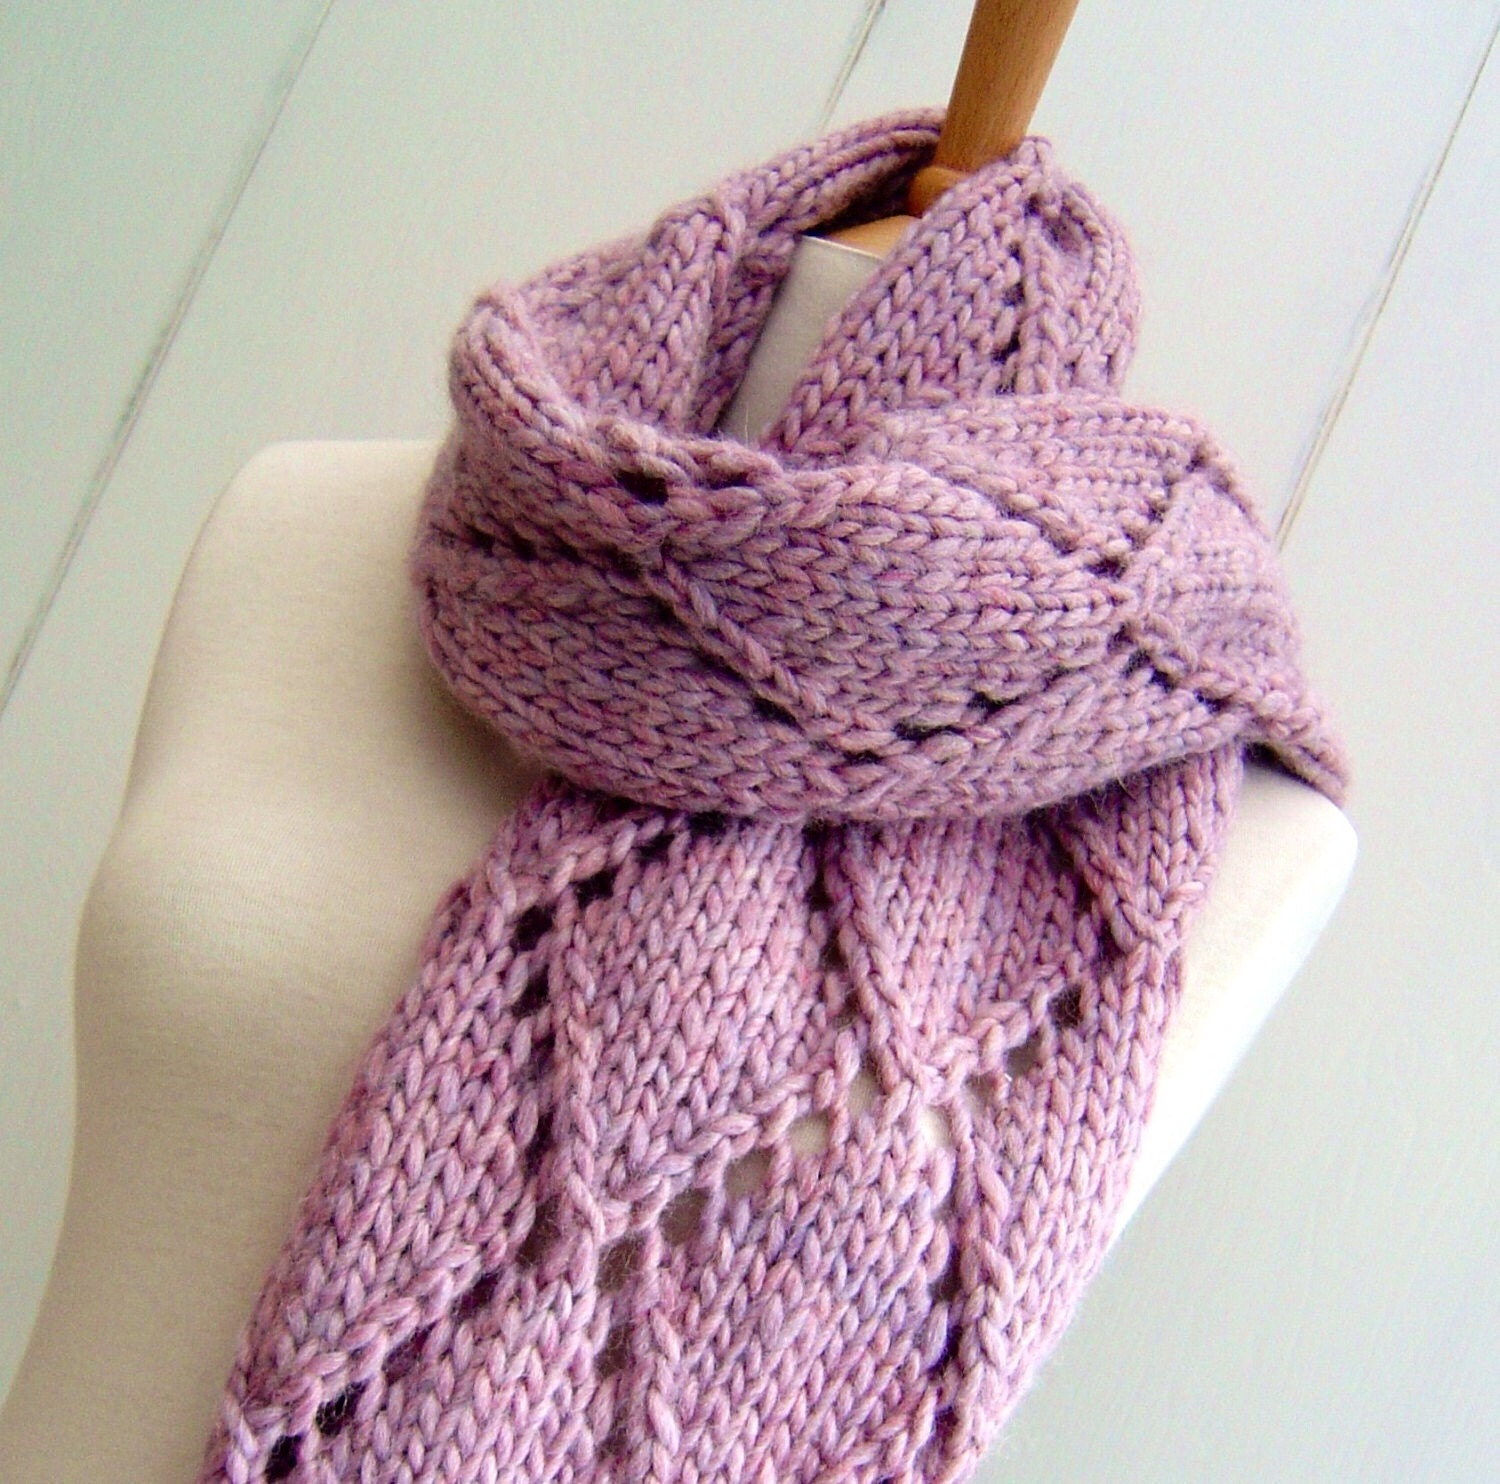 Knitting Pattern scarf wrap Easy Knit Diamond Lattice Scarf